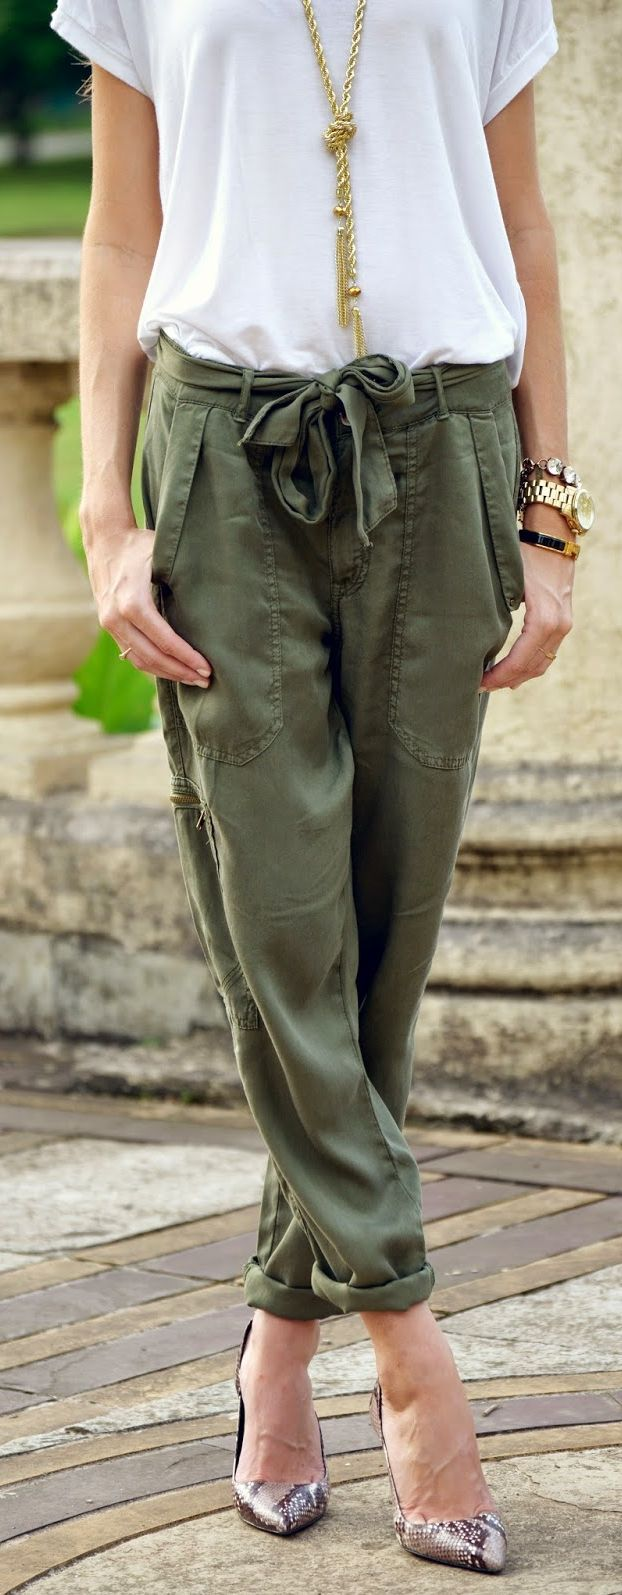 Olive cargo pants, white top, golden necklace, nude pumps